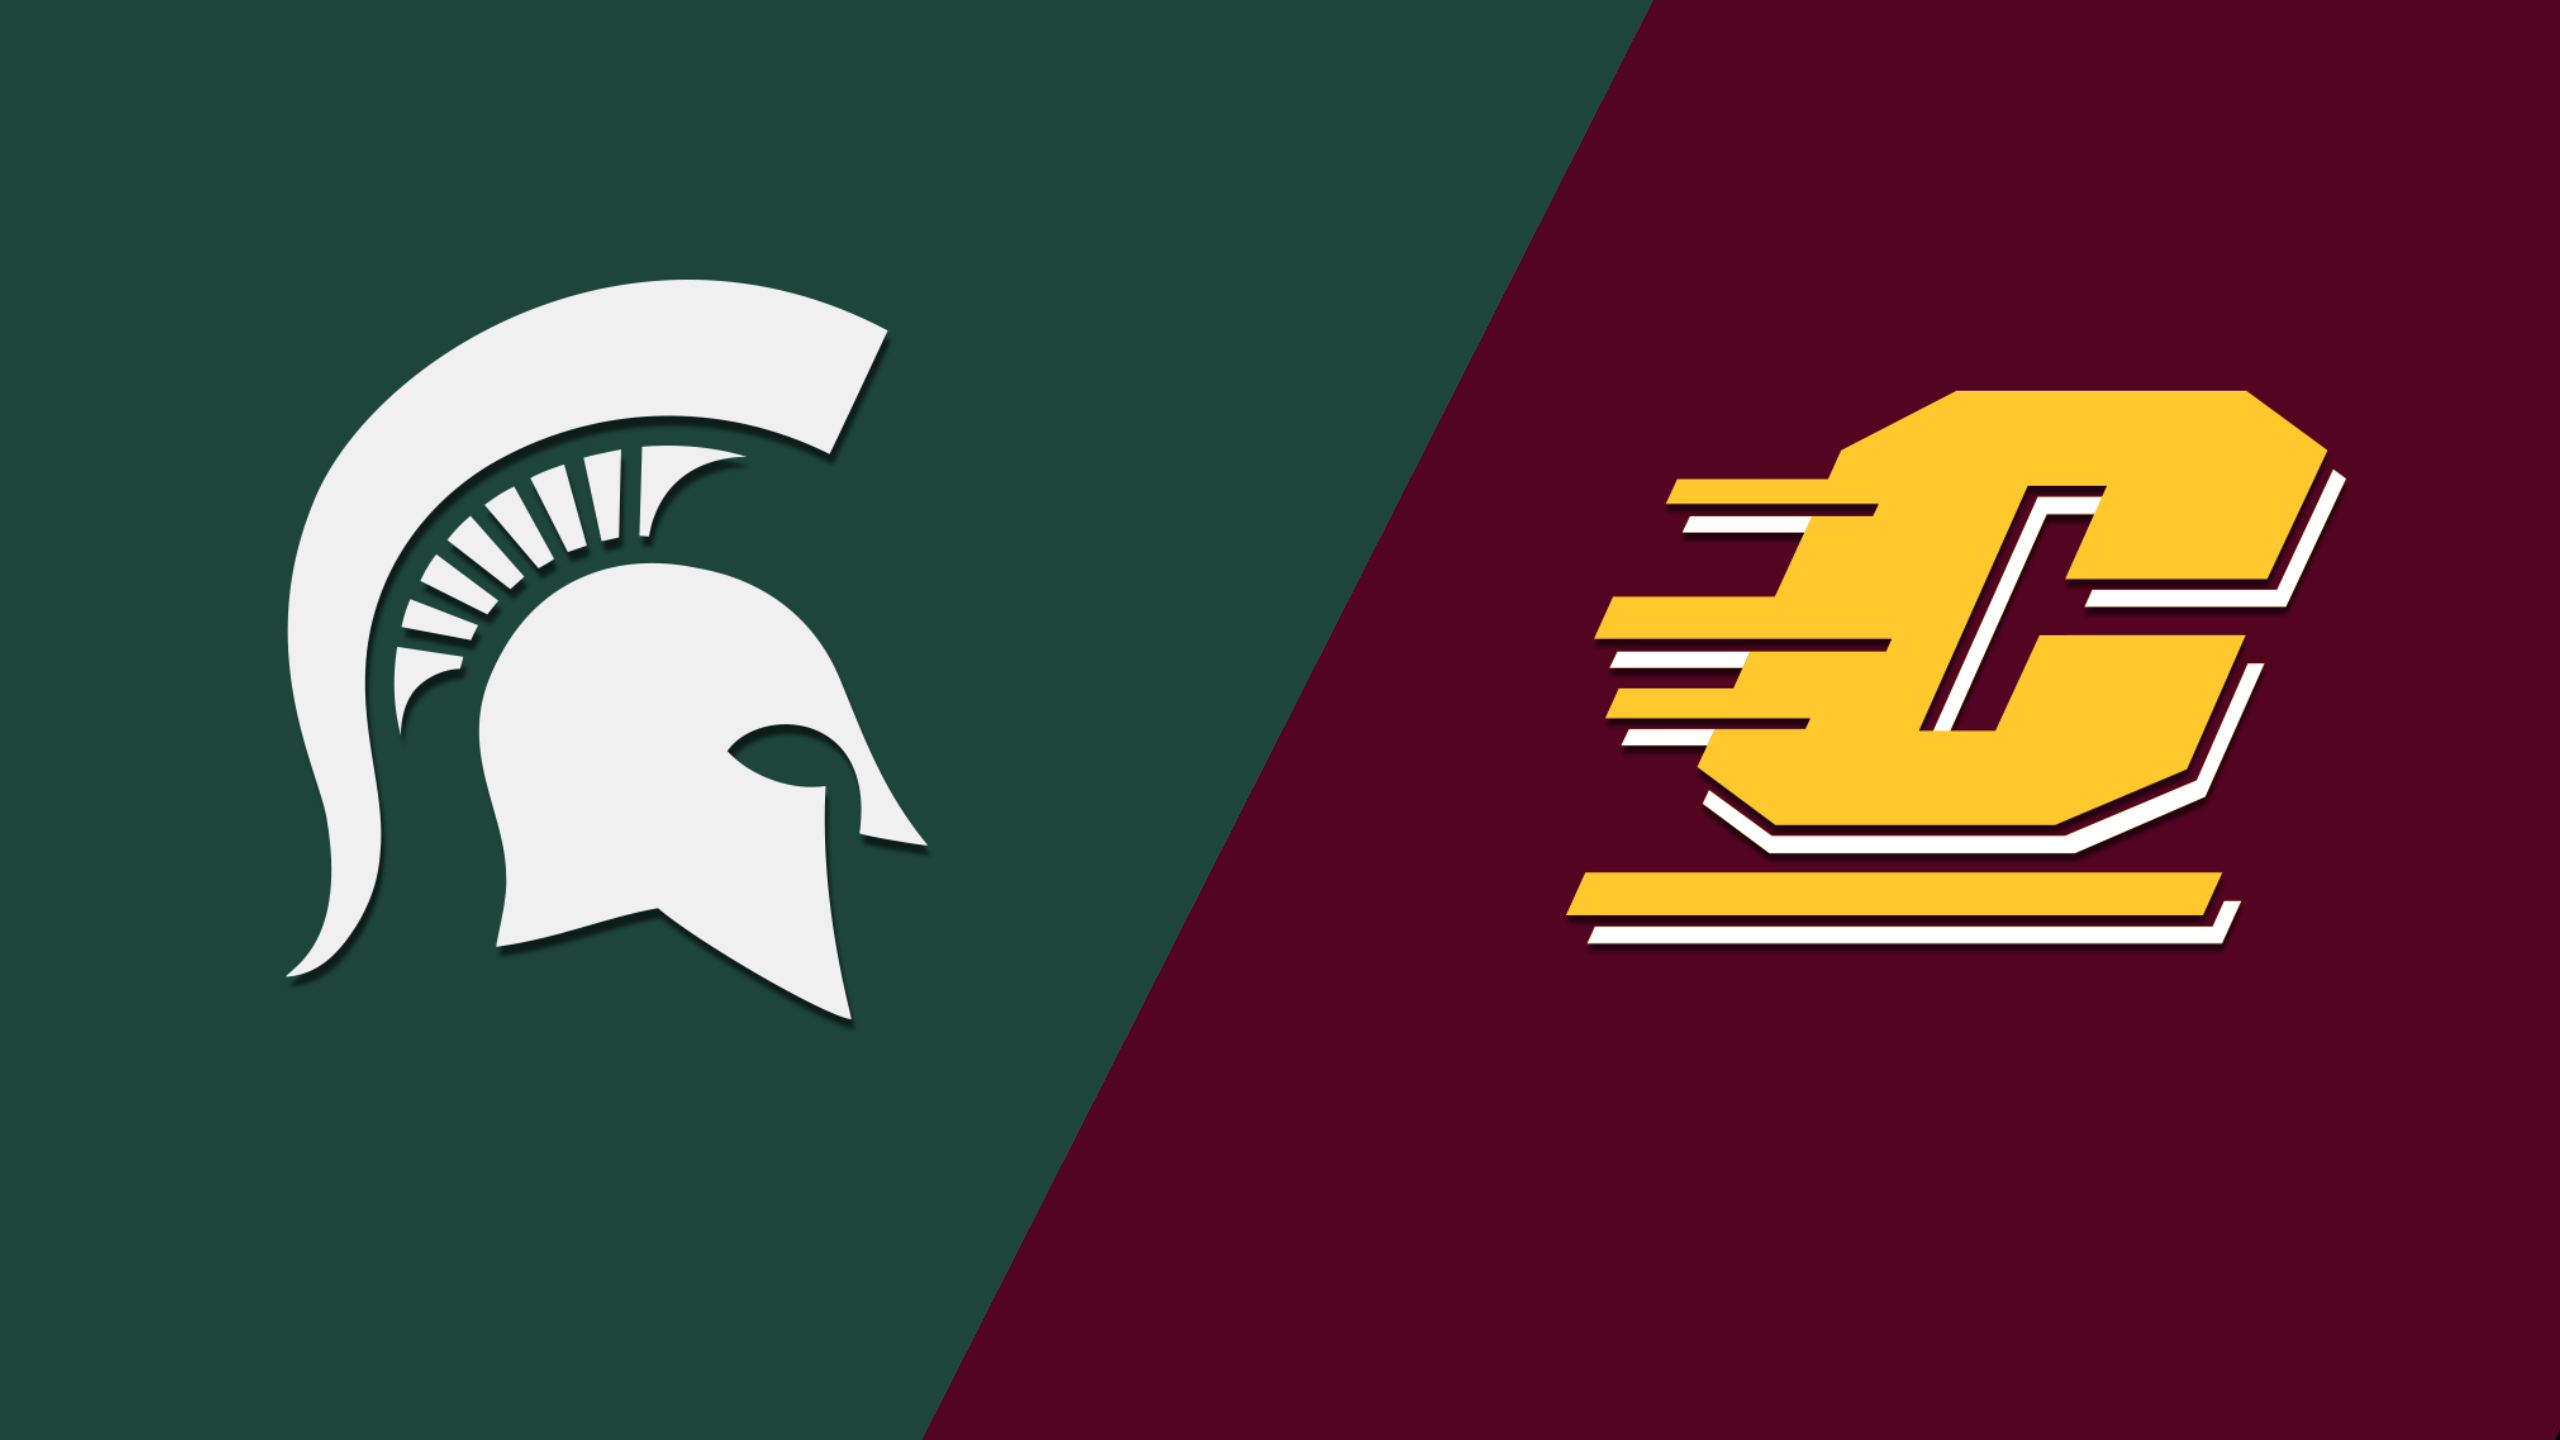 #9 Michigan State vs. #8 Central Michigan (First Round) (NCAA Women's Basketball Championship)